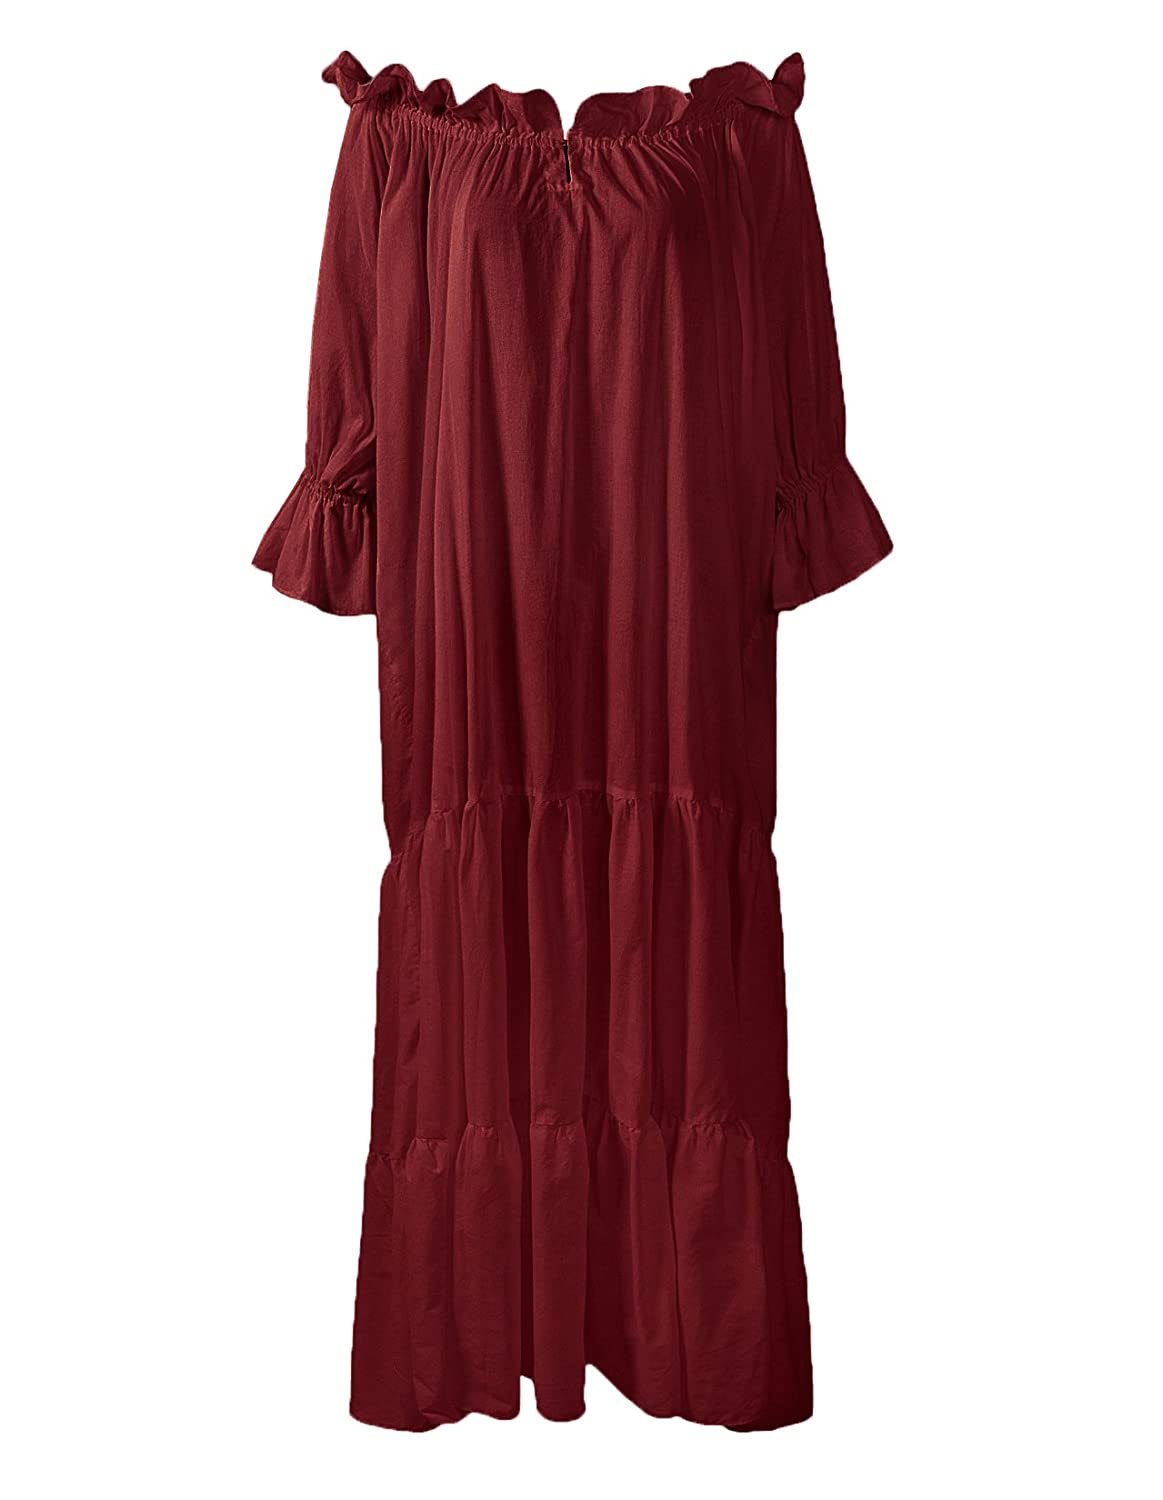 Renaissance Medieval Ruffled Tiered Sleeve Classic Burgundy Chemise - DeluxeAdultCostumes.com